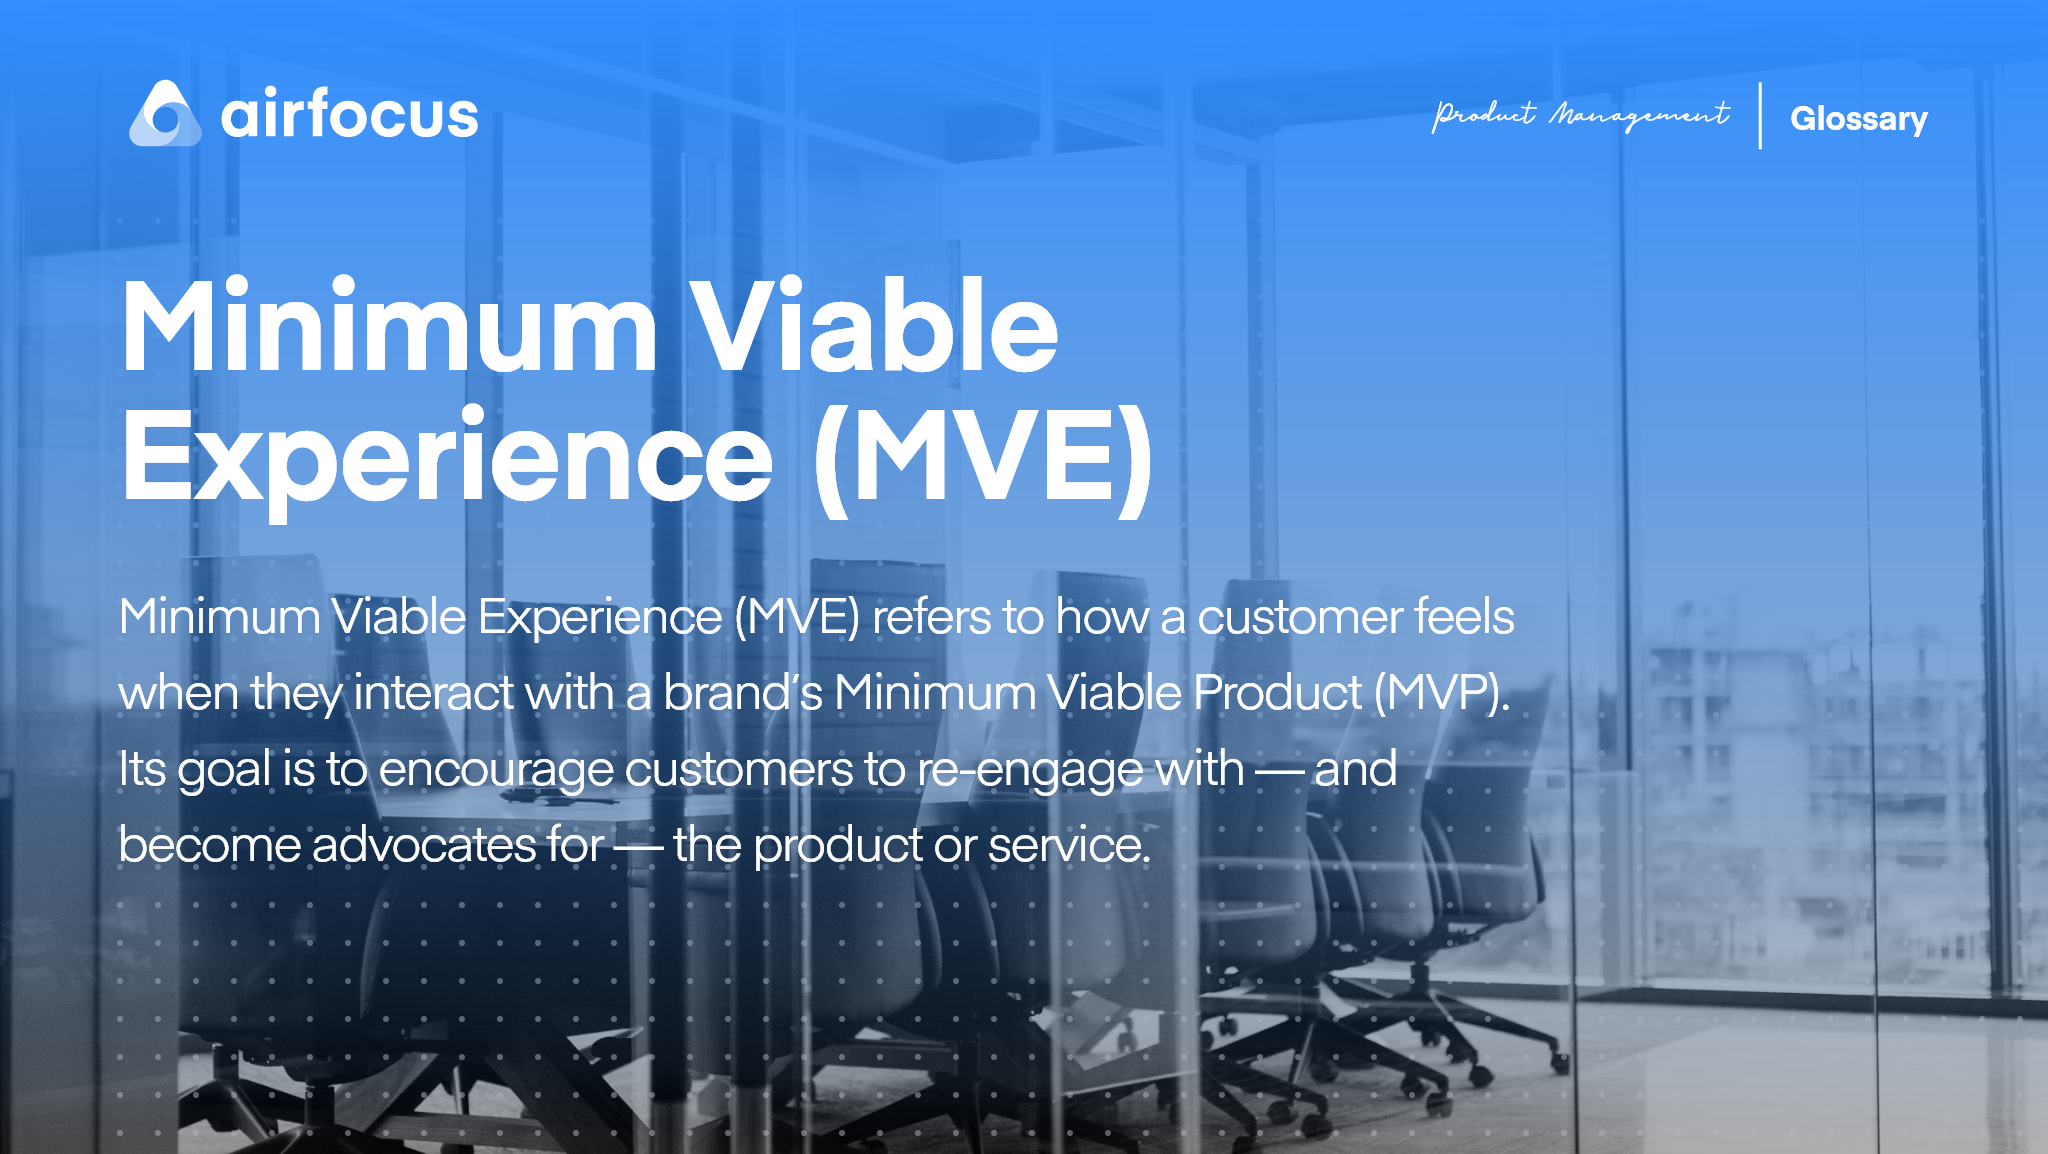 What is a Minimum Viable Experience (MVE)?